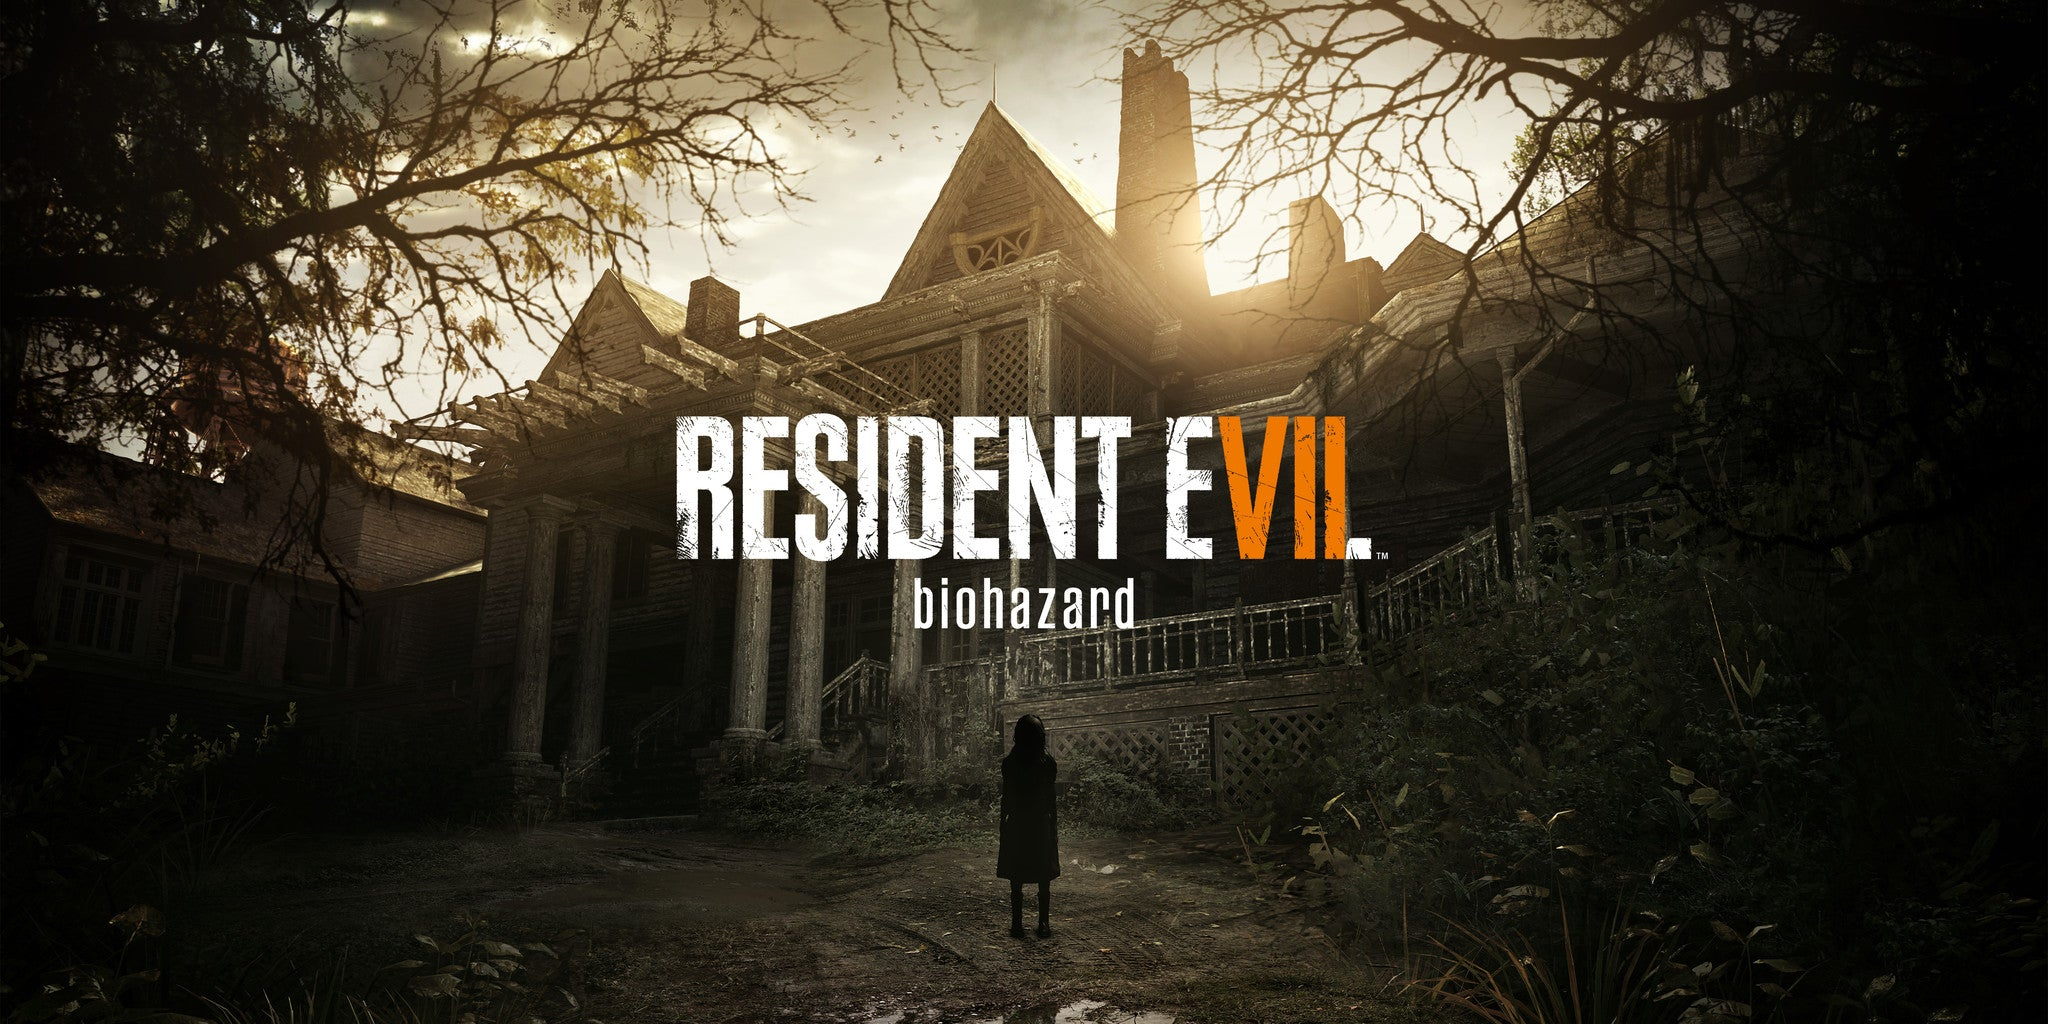 Resident Evil 7 Biohazard - PC - Video Games by Capcom The Chelsea Gamer